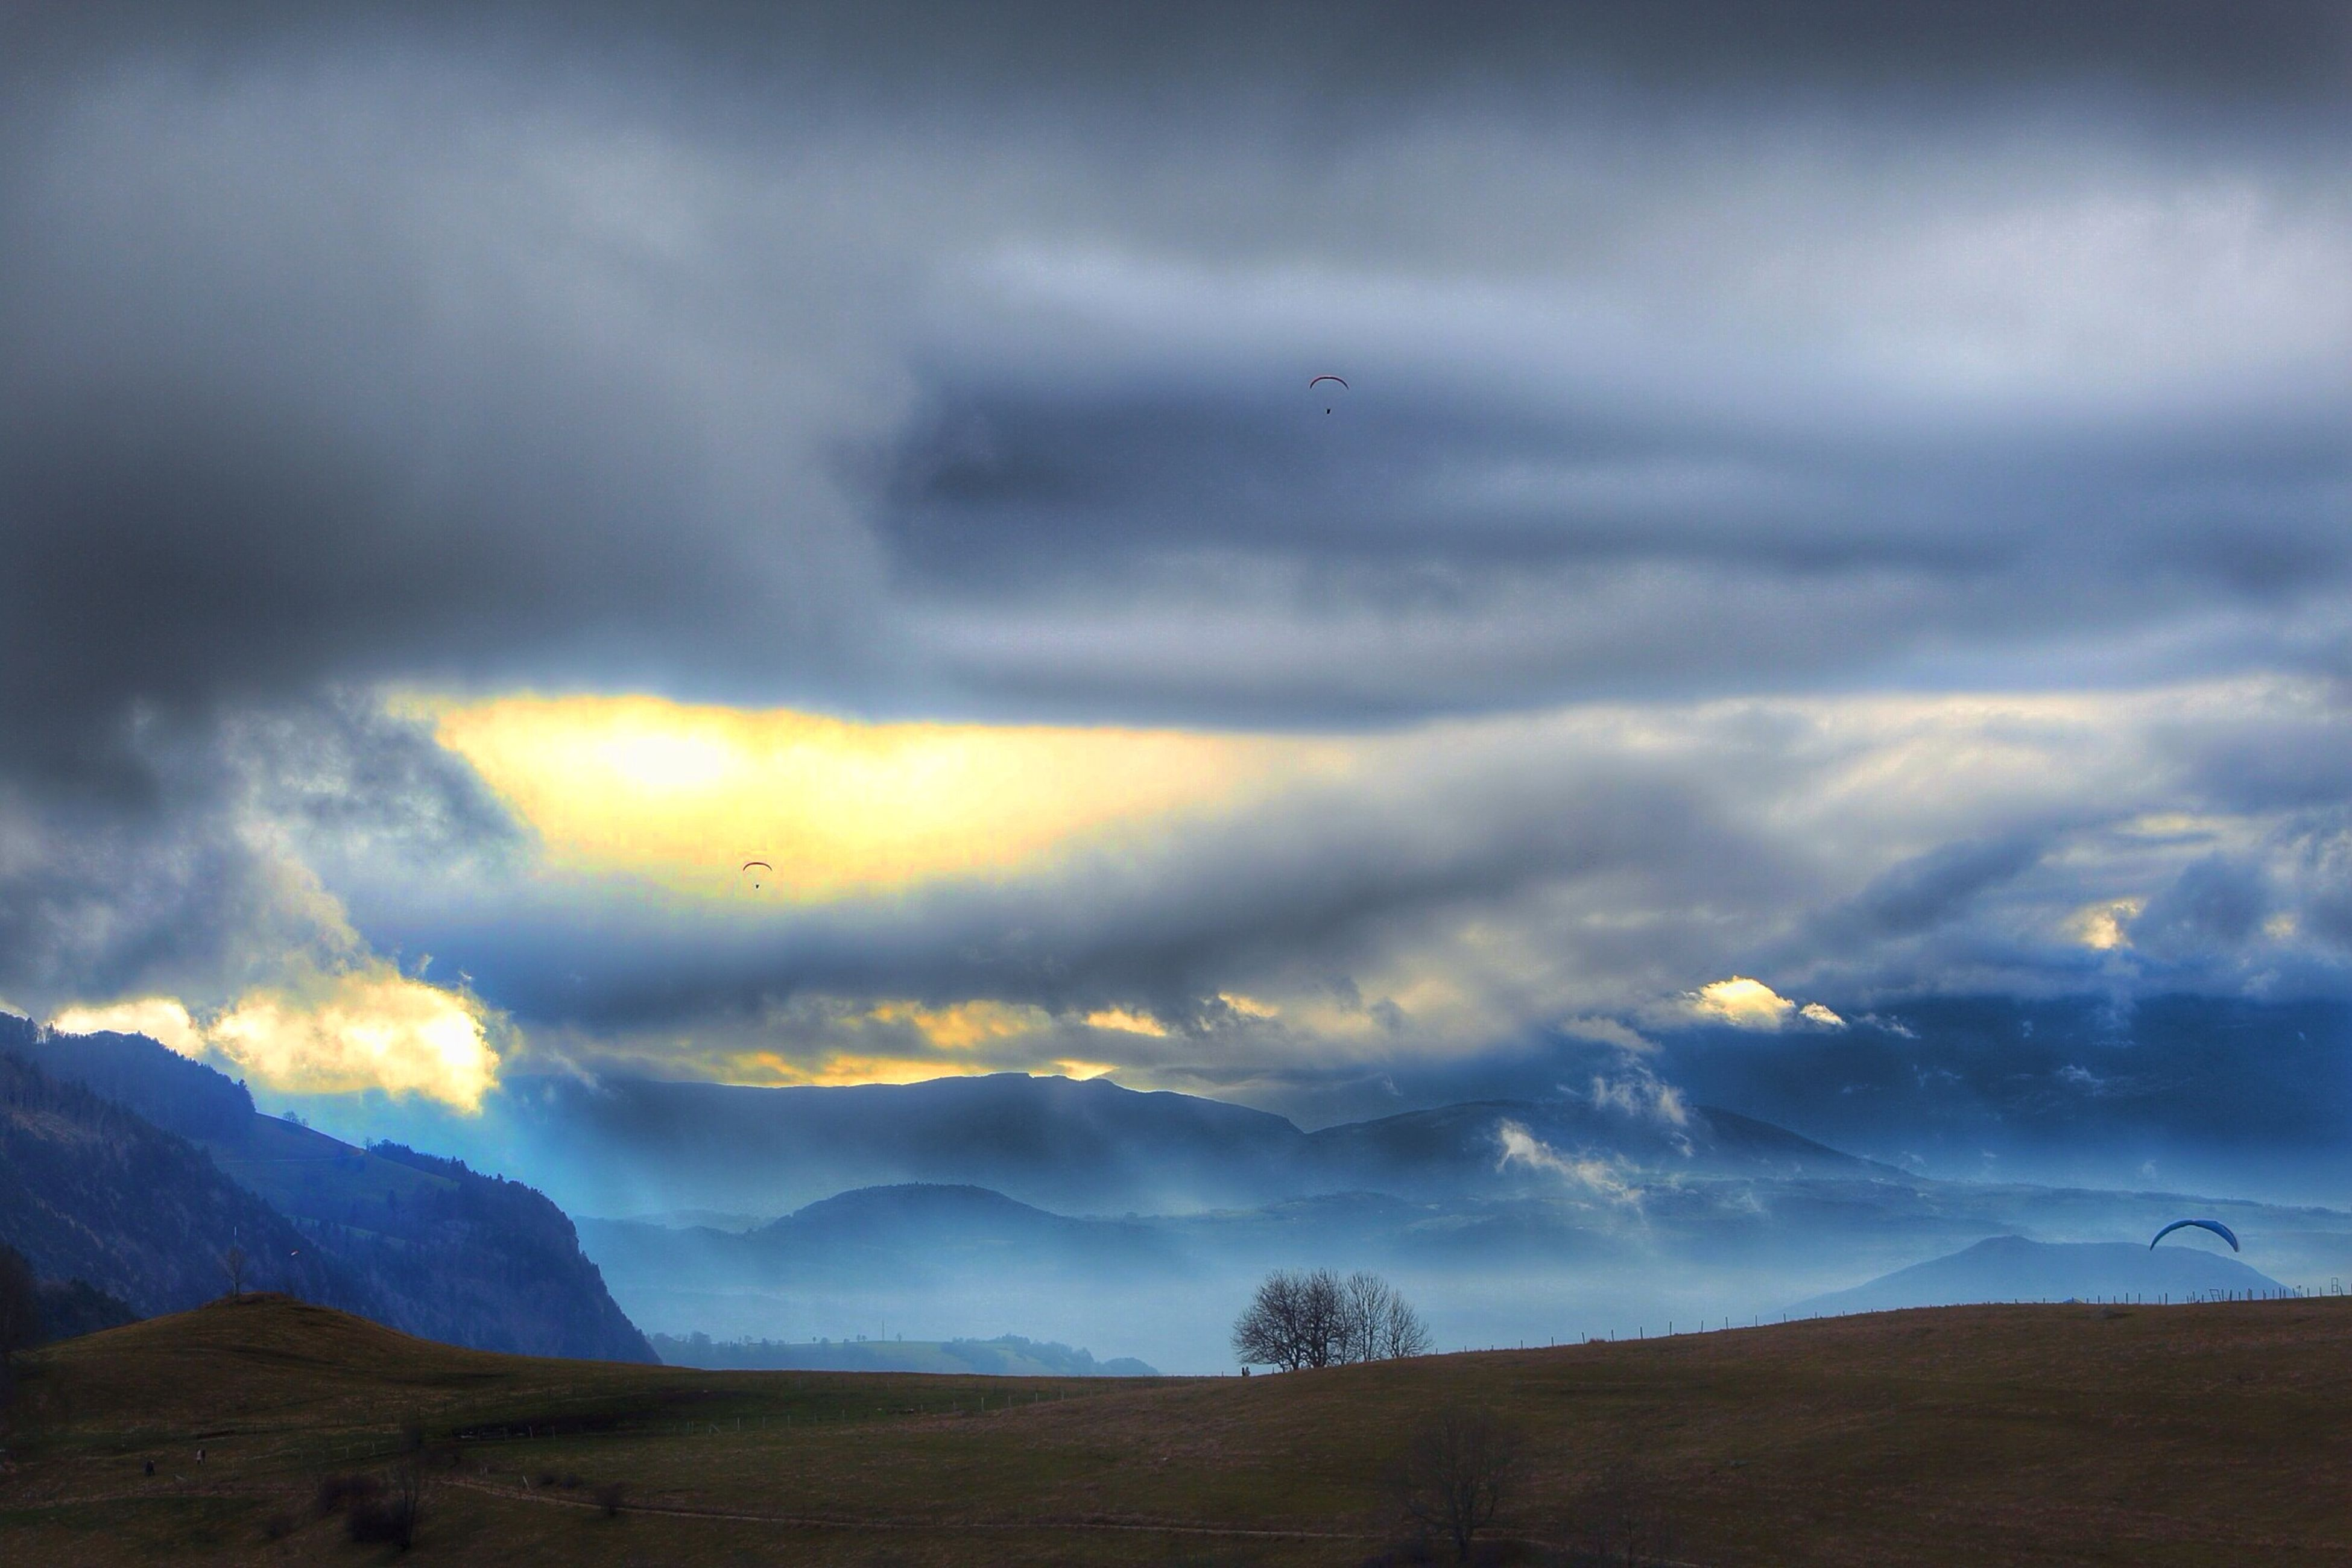 sky, cloud - sky, tranquil scene, scenics, tranquility, landscape, mountain, beauty in nature, cloudy, nature, sunset, cloud, weather, silhouette, idyllic, non-urban scene, mountain range, dusk, overcast, flying